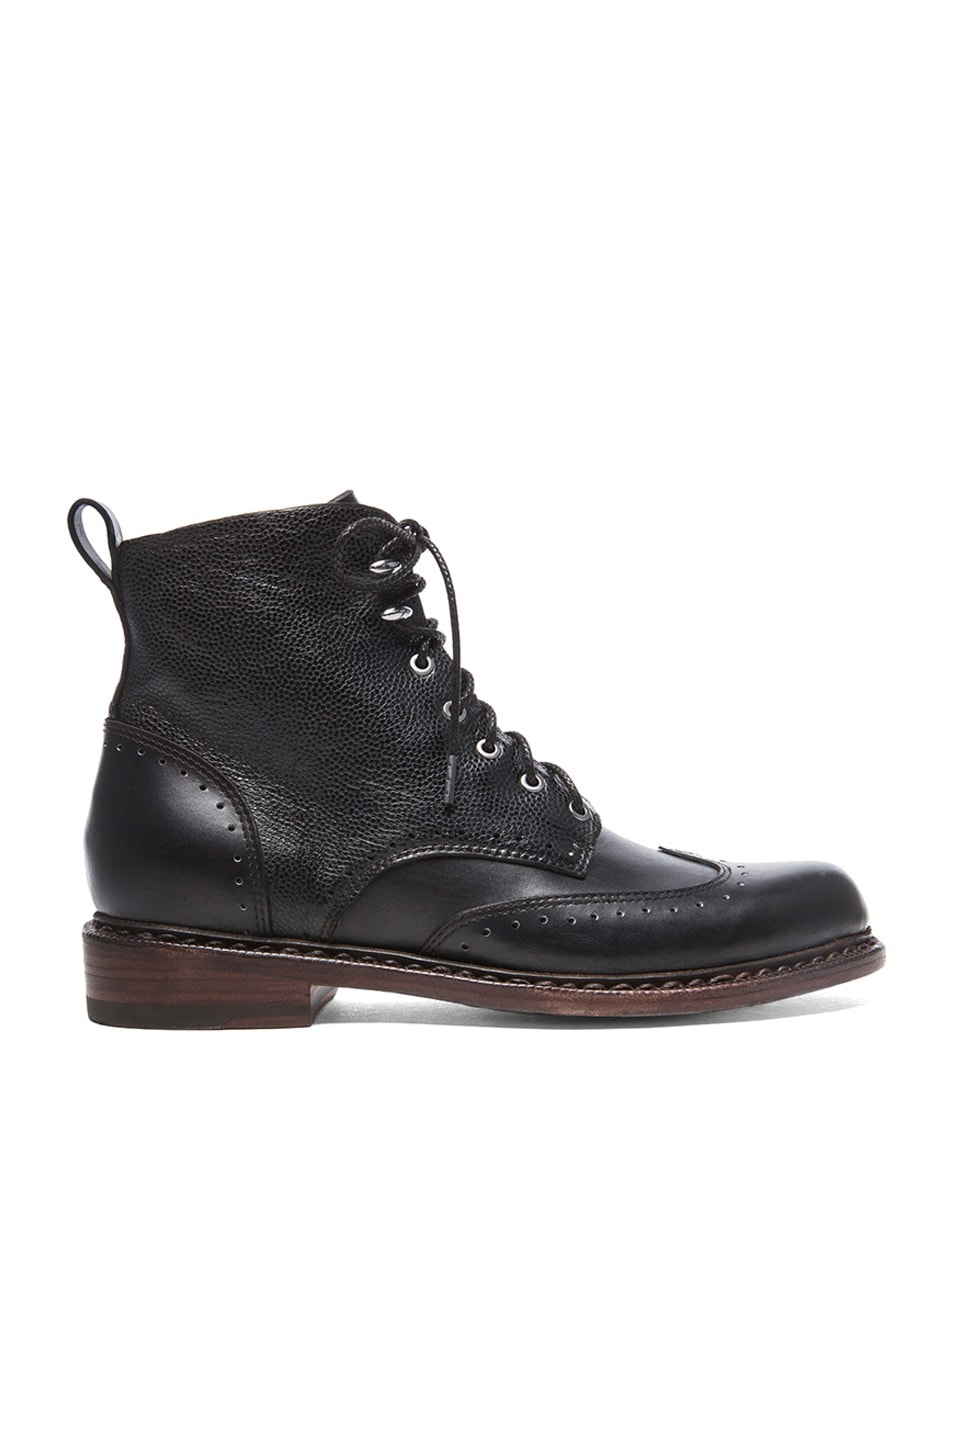 Image 1 of Rag & Bone Cozen Leather Boots in Black